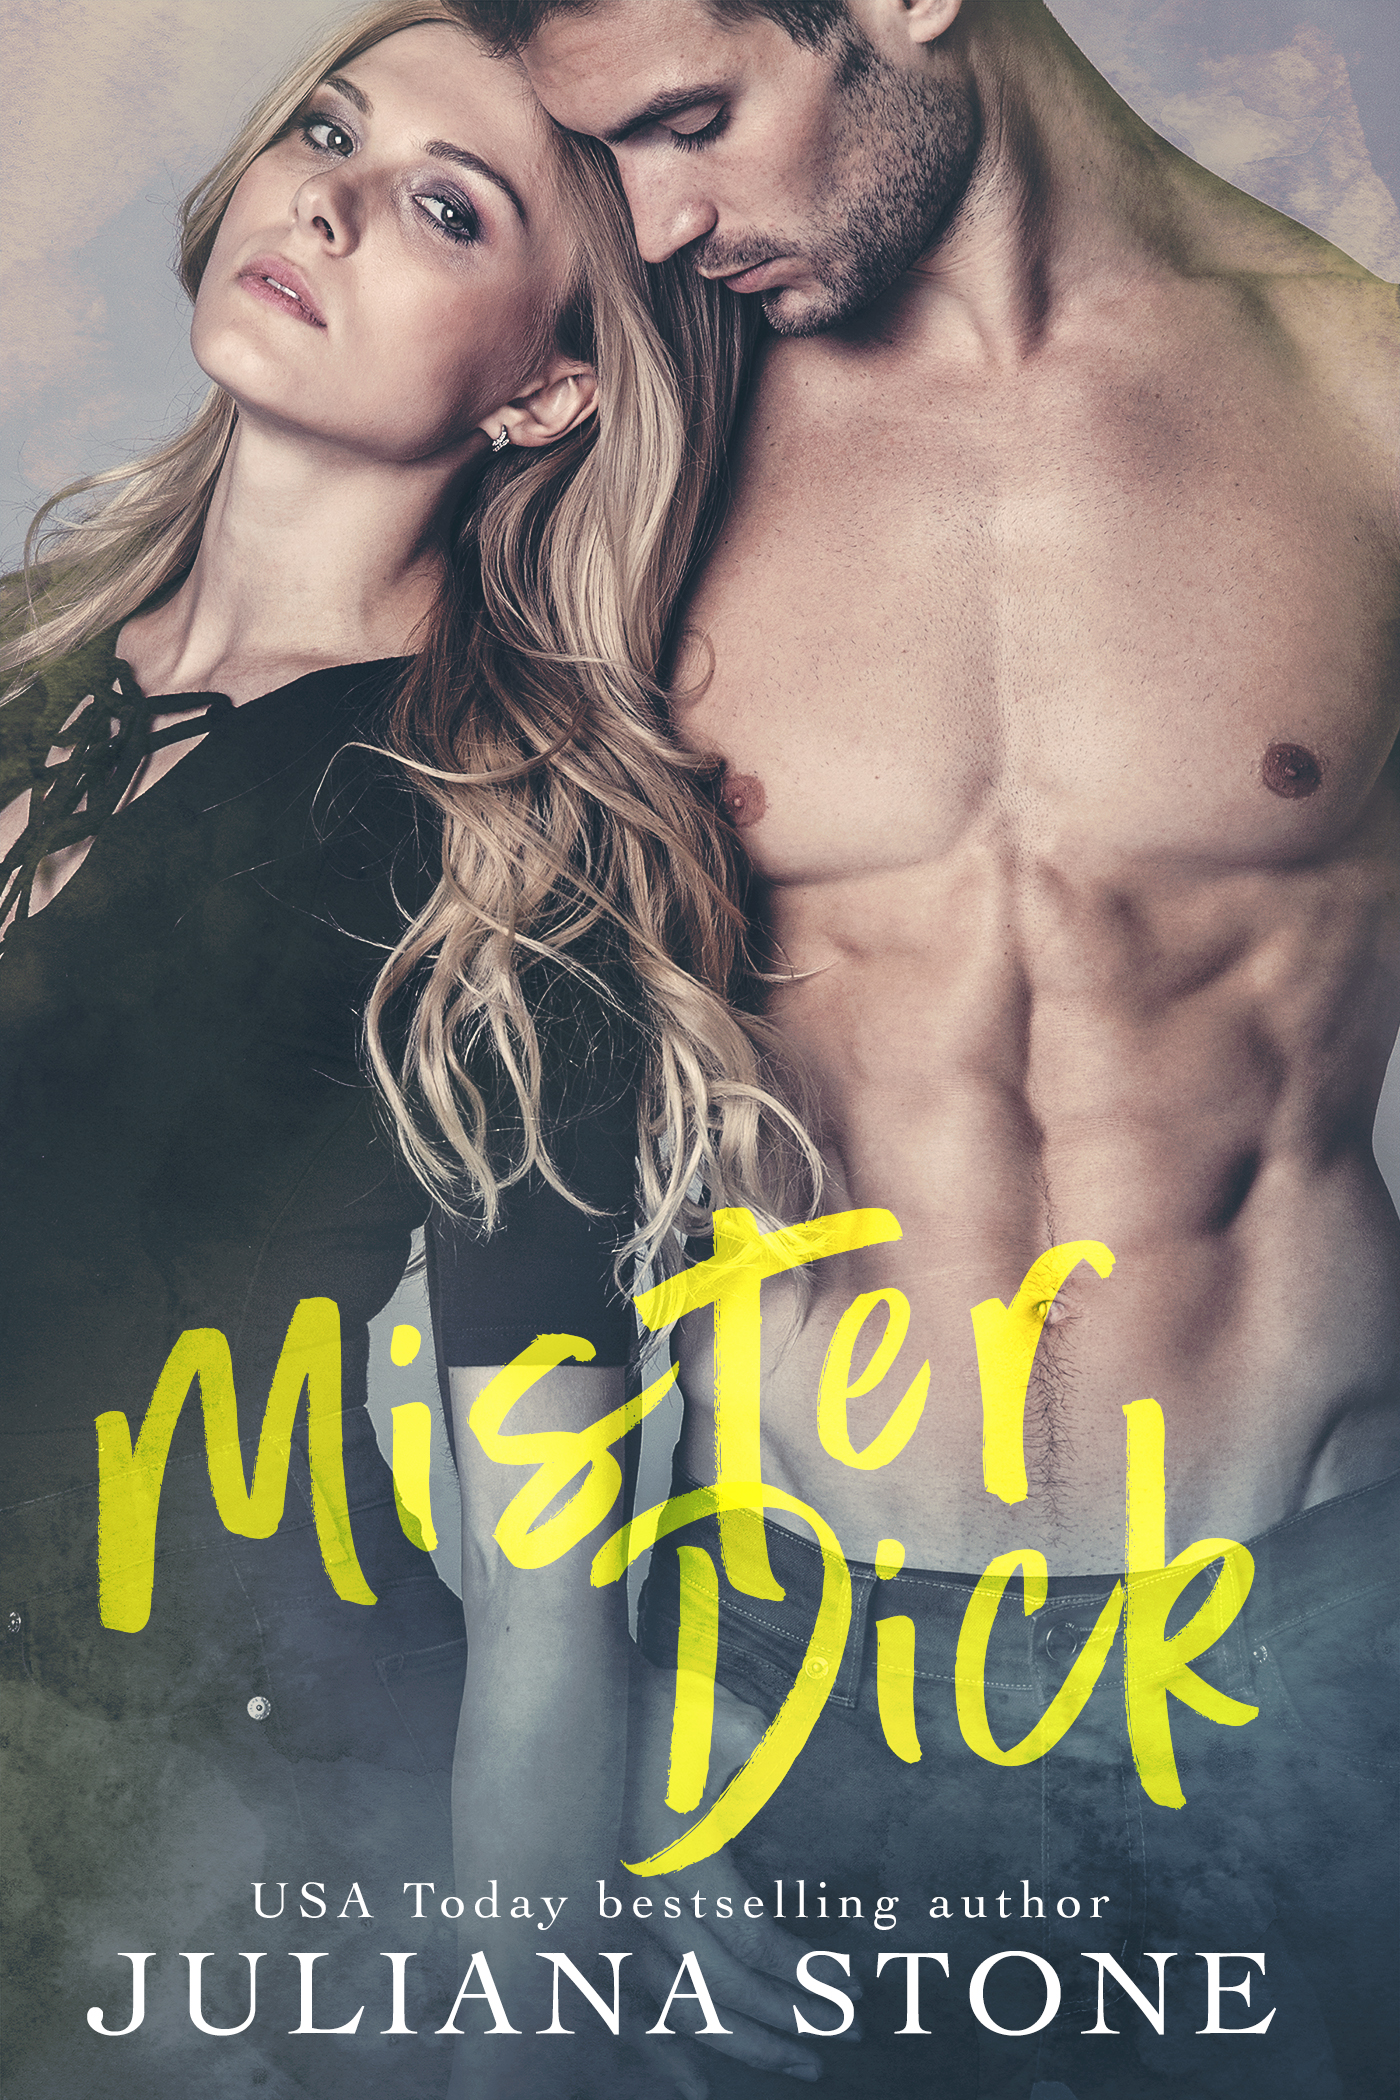 Mister Dick by Juliana Stone